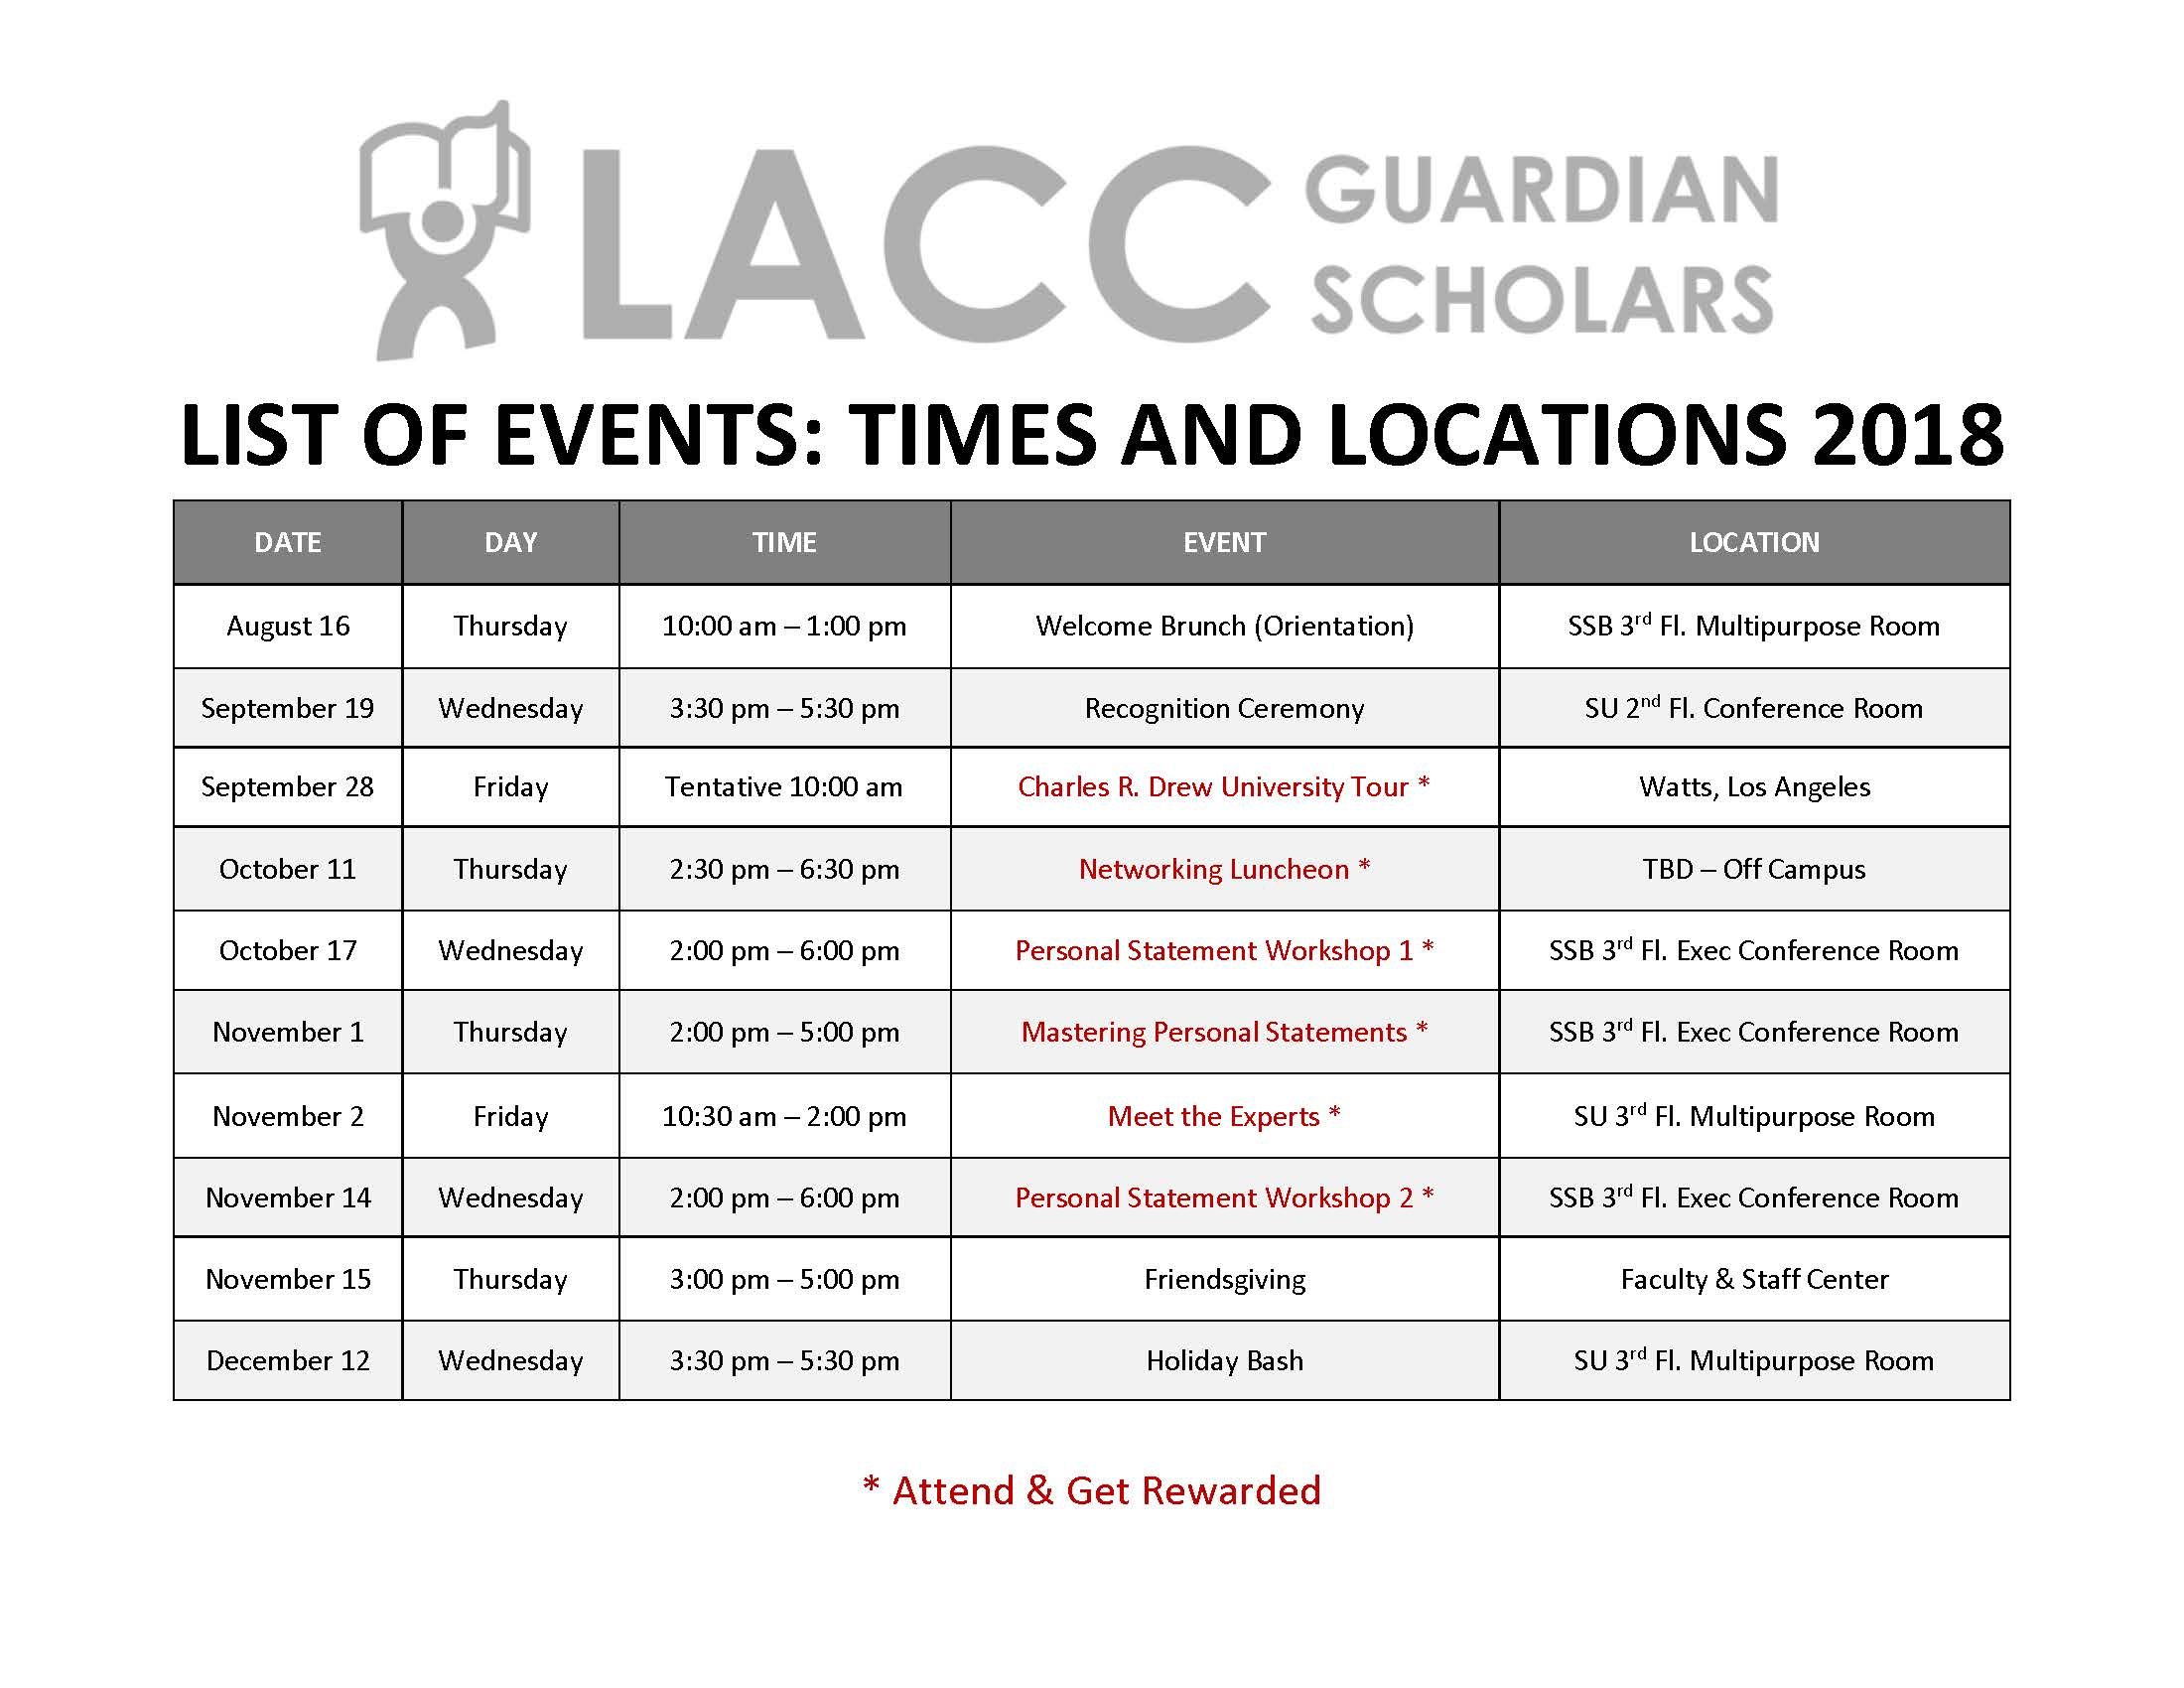 A long list of our events. Please call the Guardian Scholars Office to get a full list of these. The phone number is 323-953-4000, extension 2345